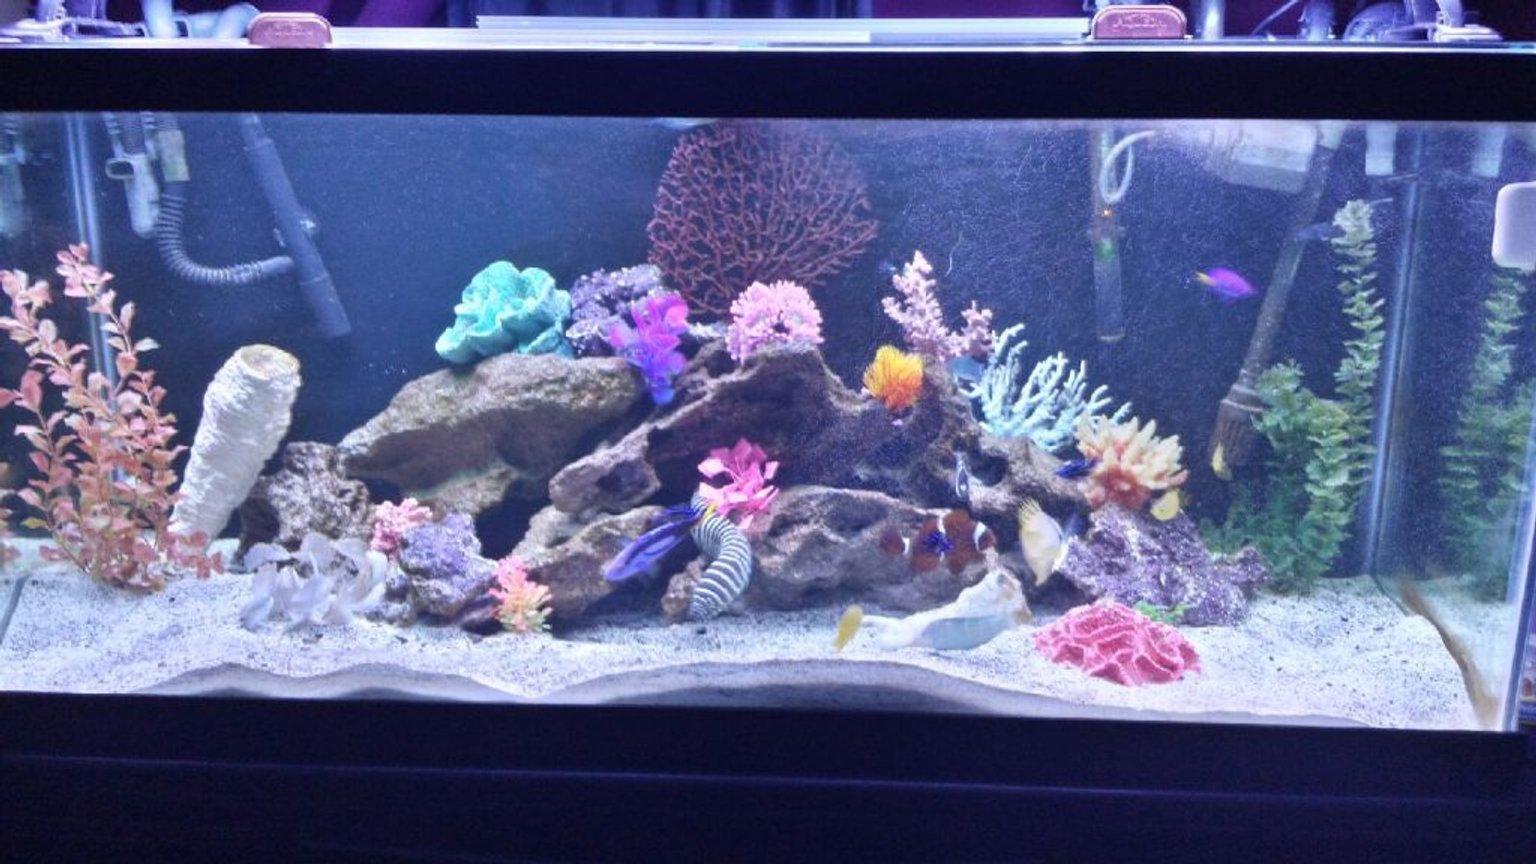 75 gallons saltwater fish tank (mostly fish, little/no live coral) - My 75 gallon fowler